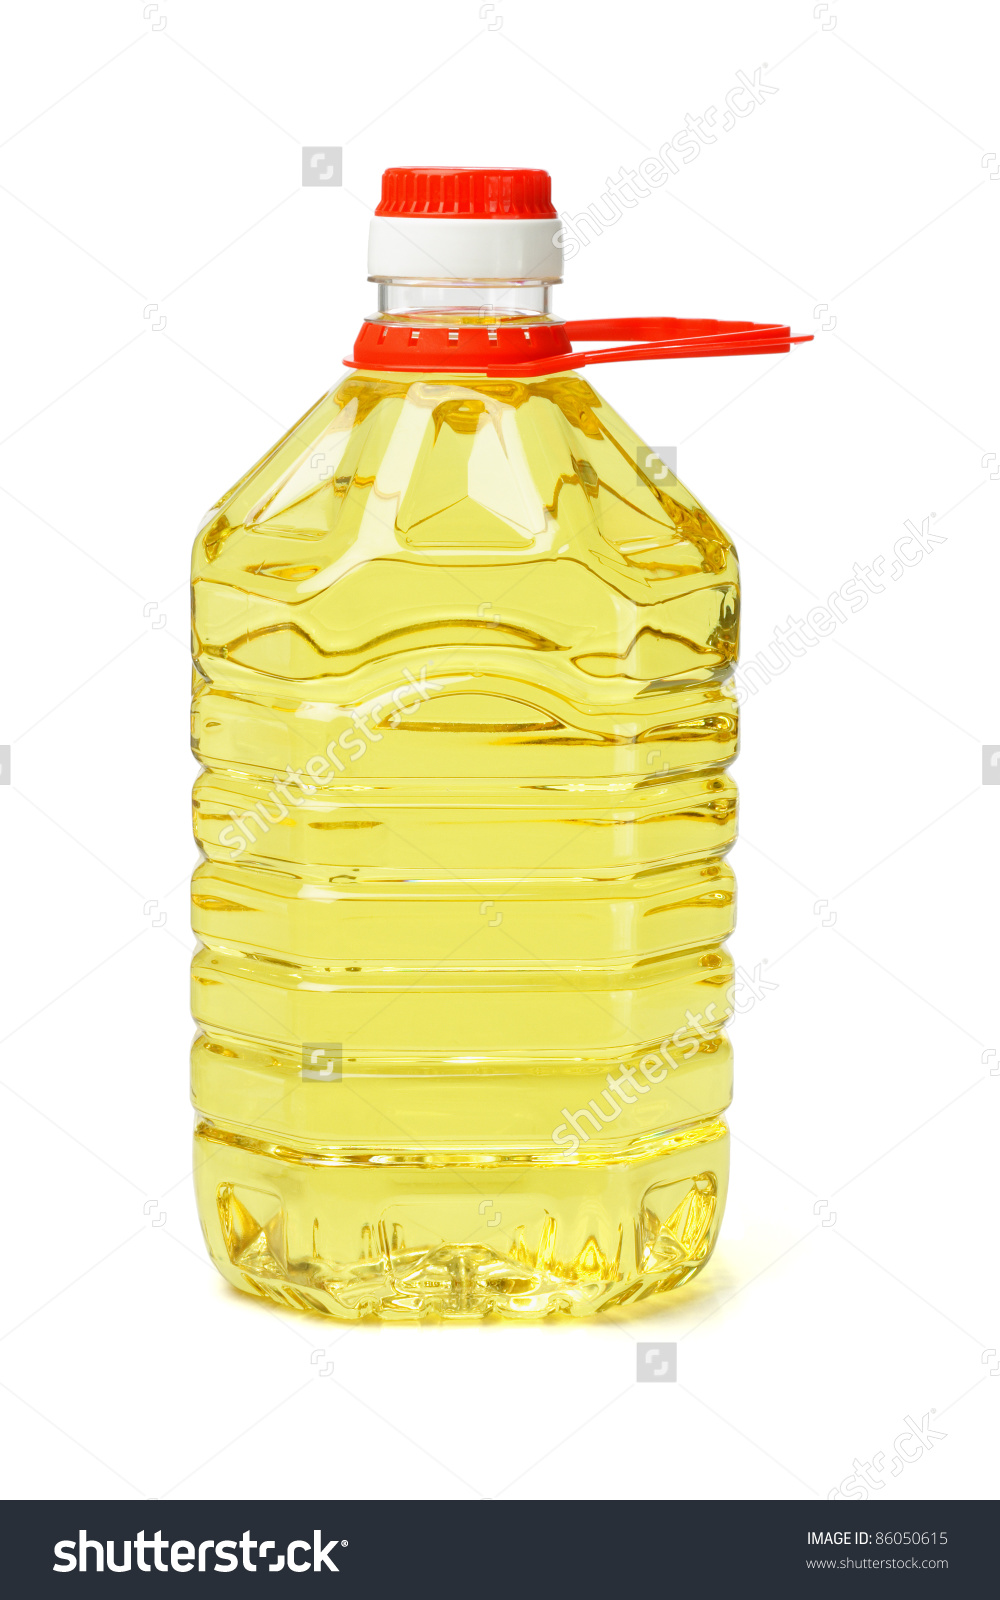 Cooking oil clipart black and white.